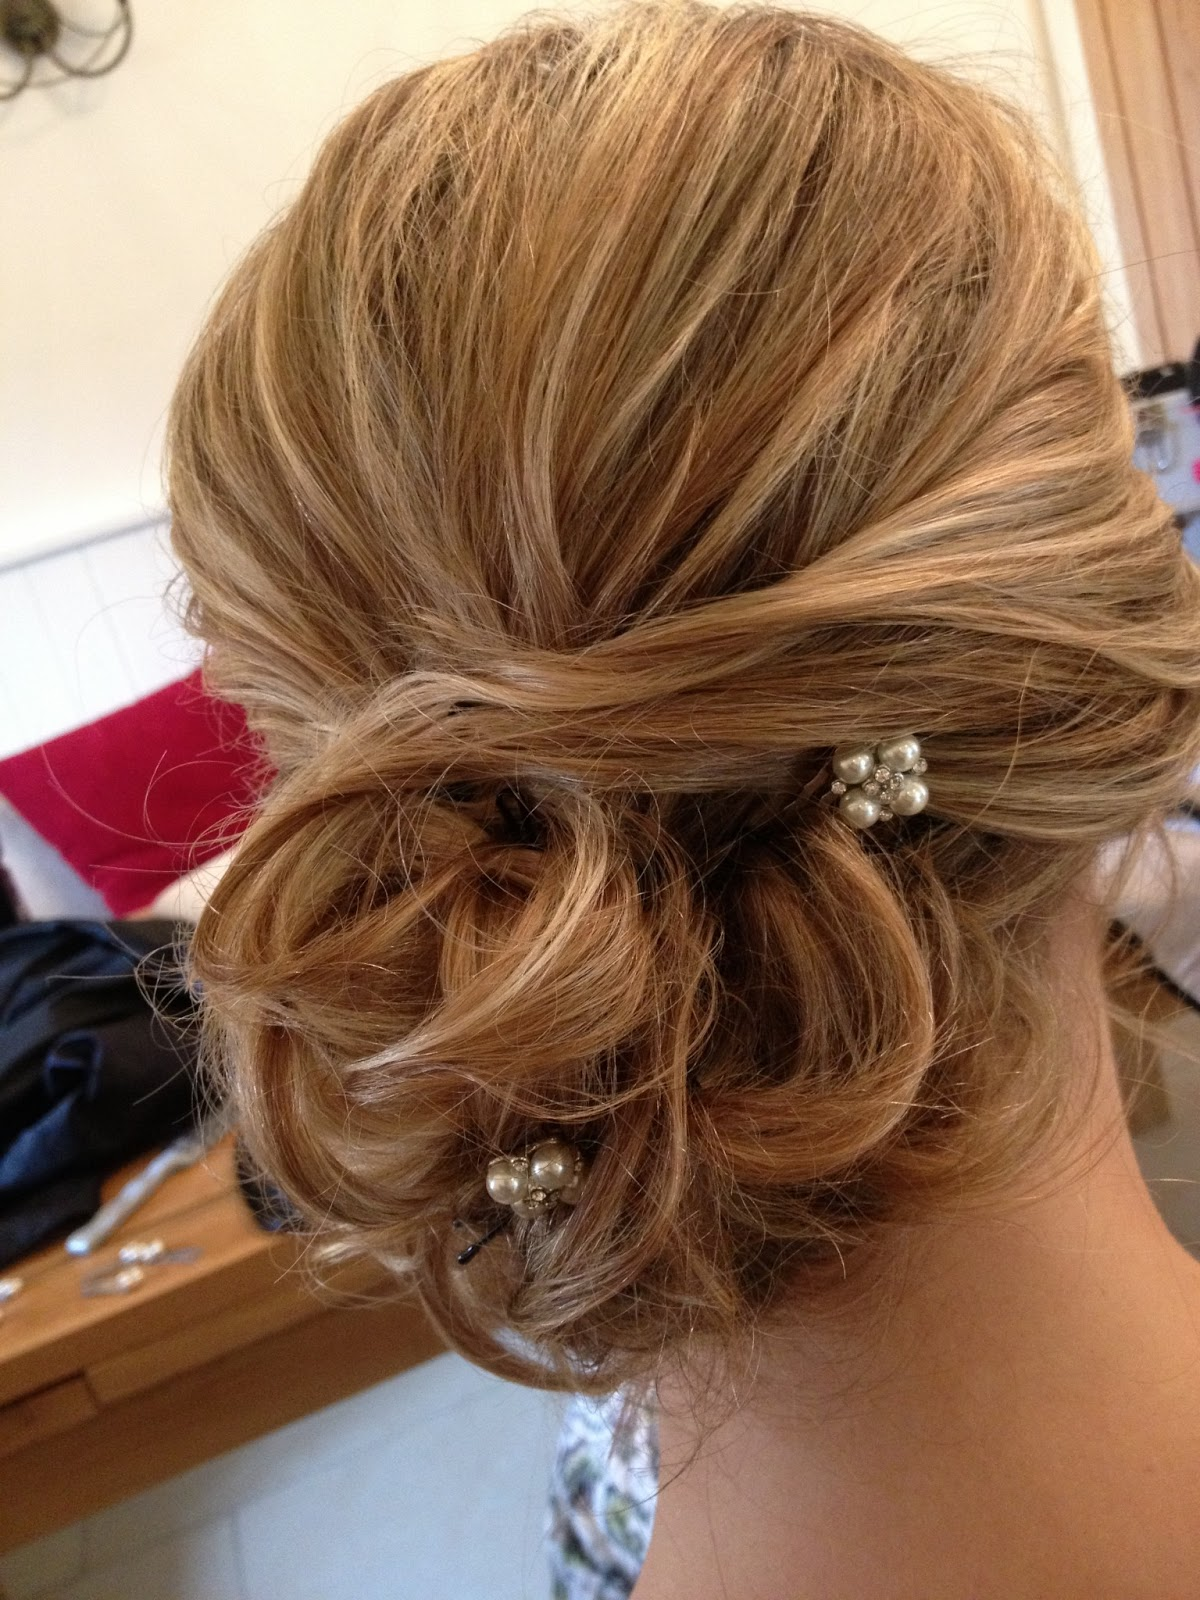 Fordham Hair Design ... Wedding Bridal Hair Specialist Kingscote Barn Wedding Hair Styling For ...